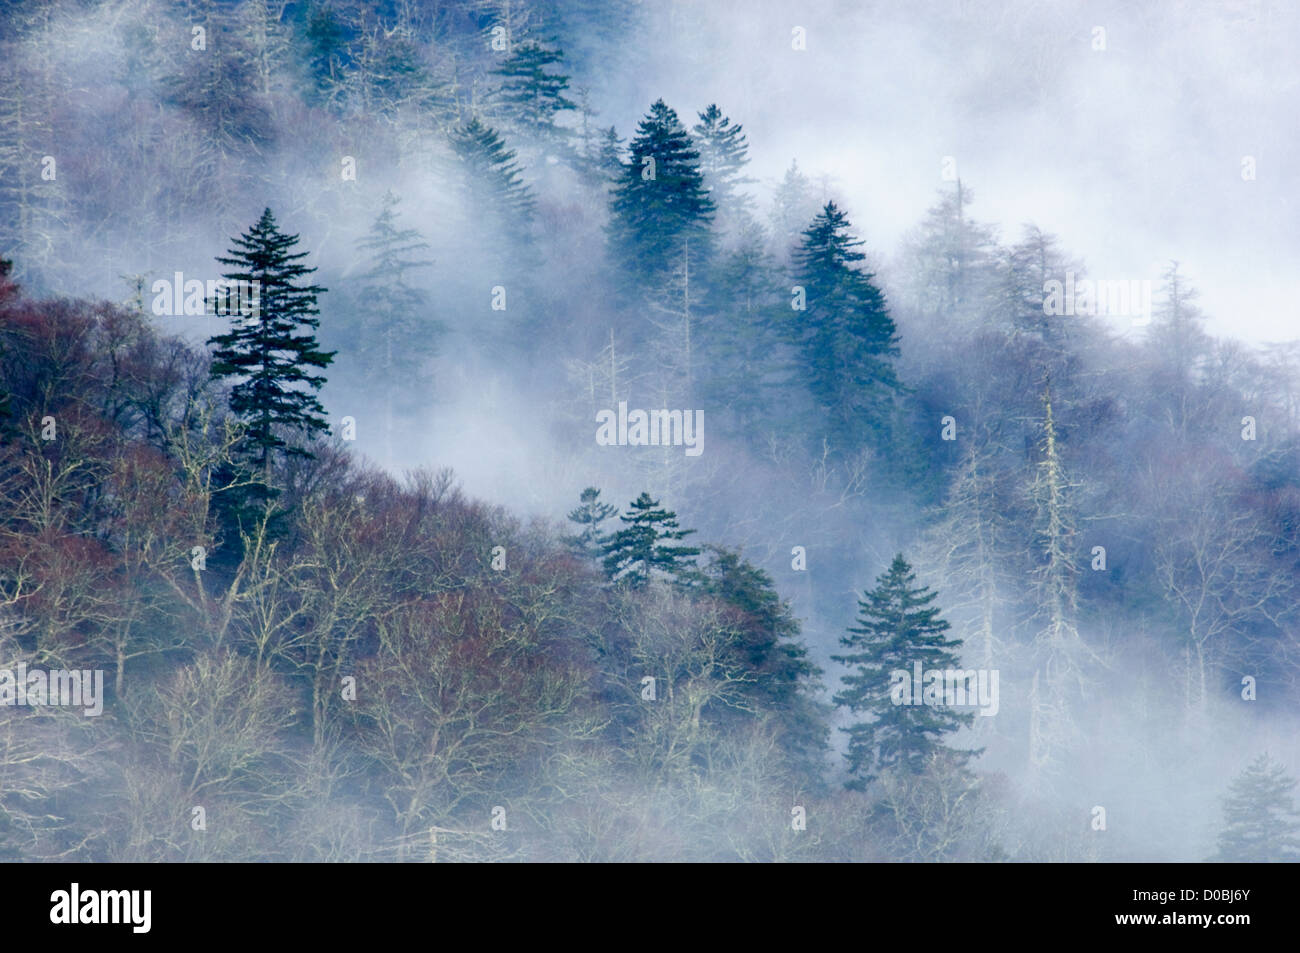 Swirling Mist on Mountainside in the Great Smoky Mountains National Park in Tennessee - Stock Image